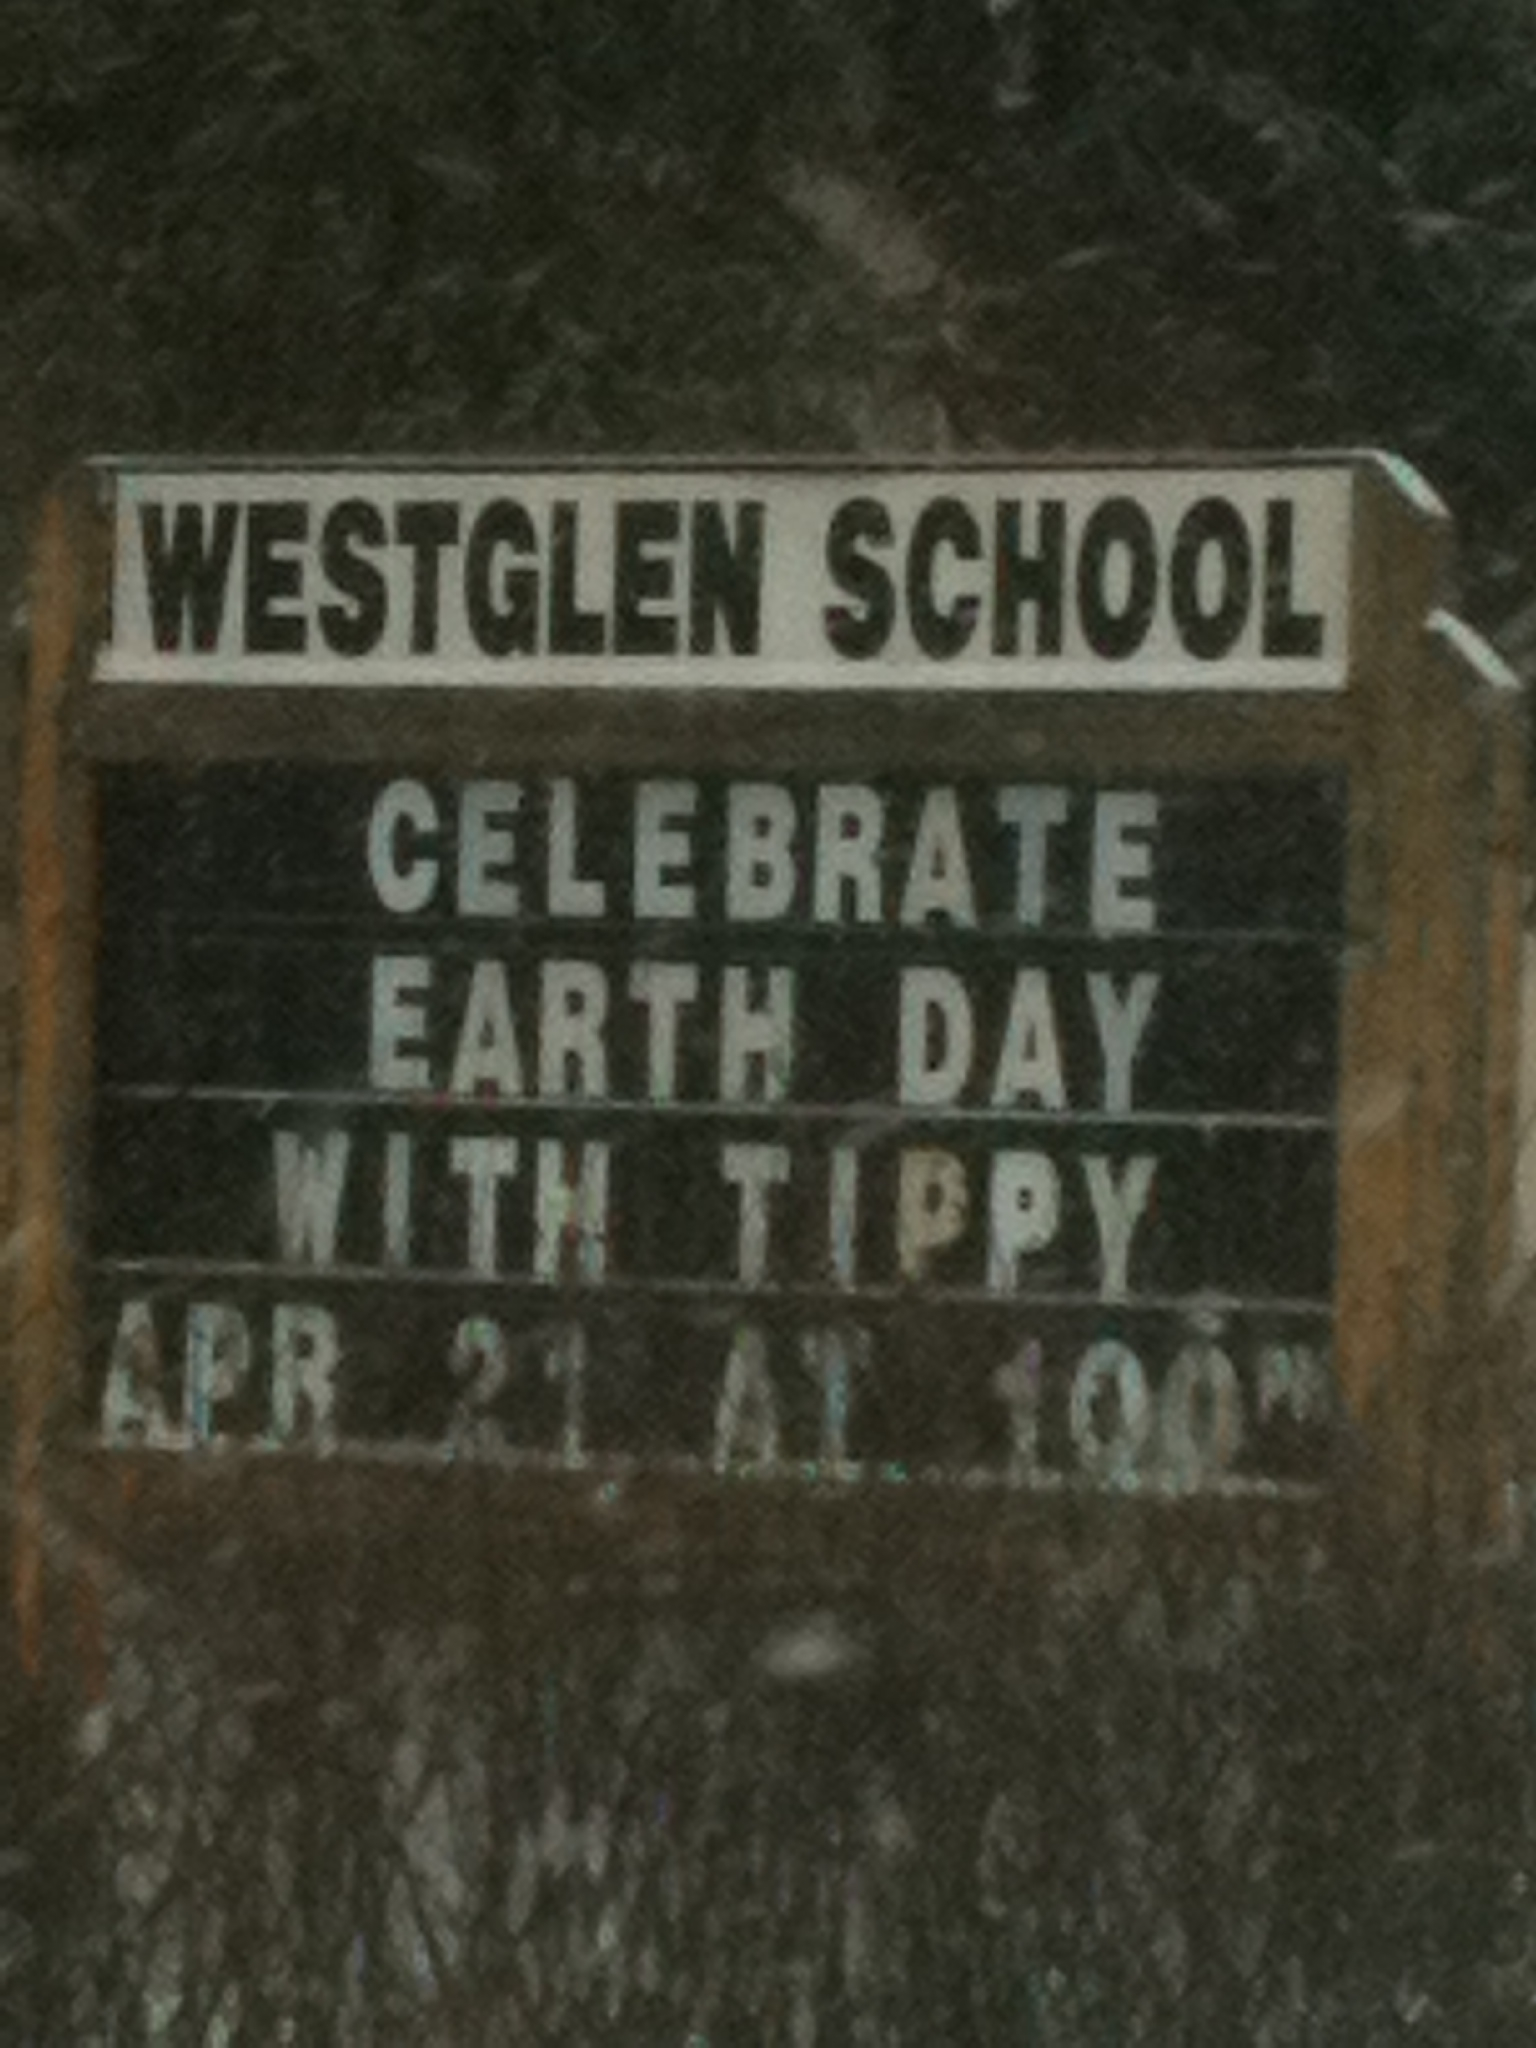 Tippy at Westglen School